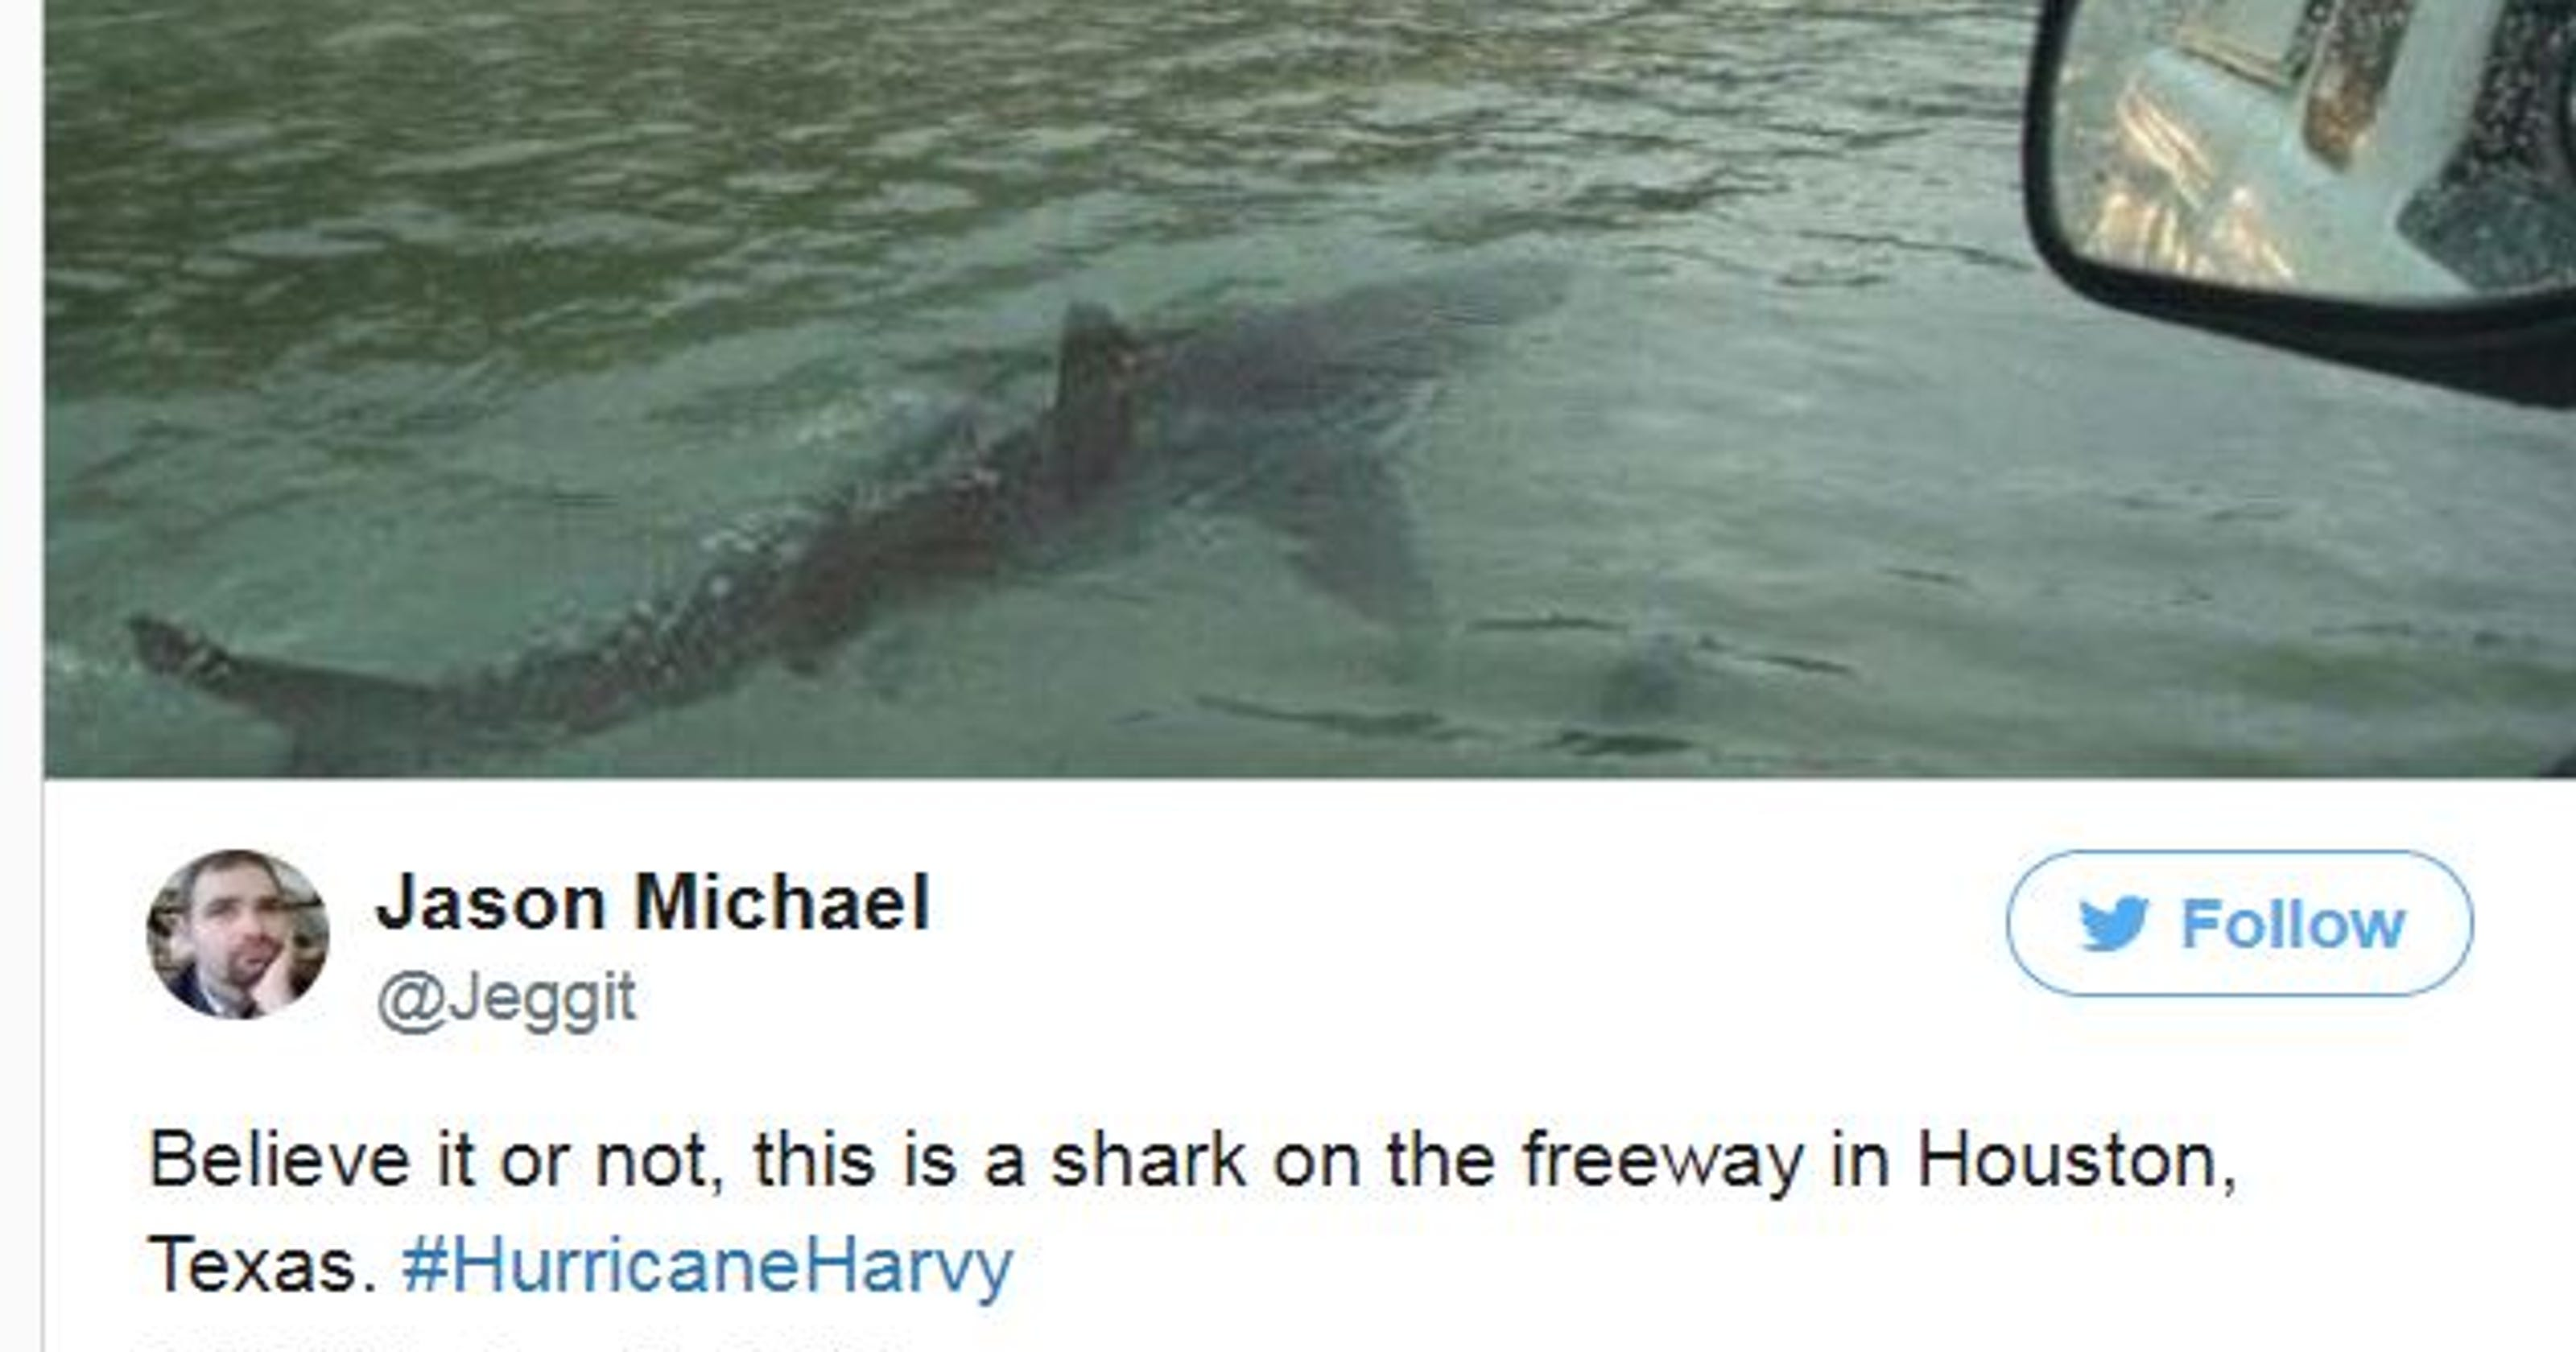 Hurricane Harvey That Shark Photo Is Fake And Fueling A Problem